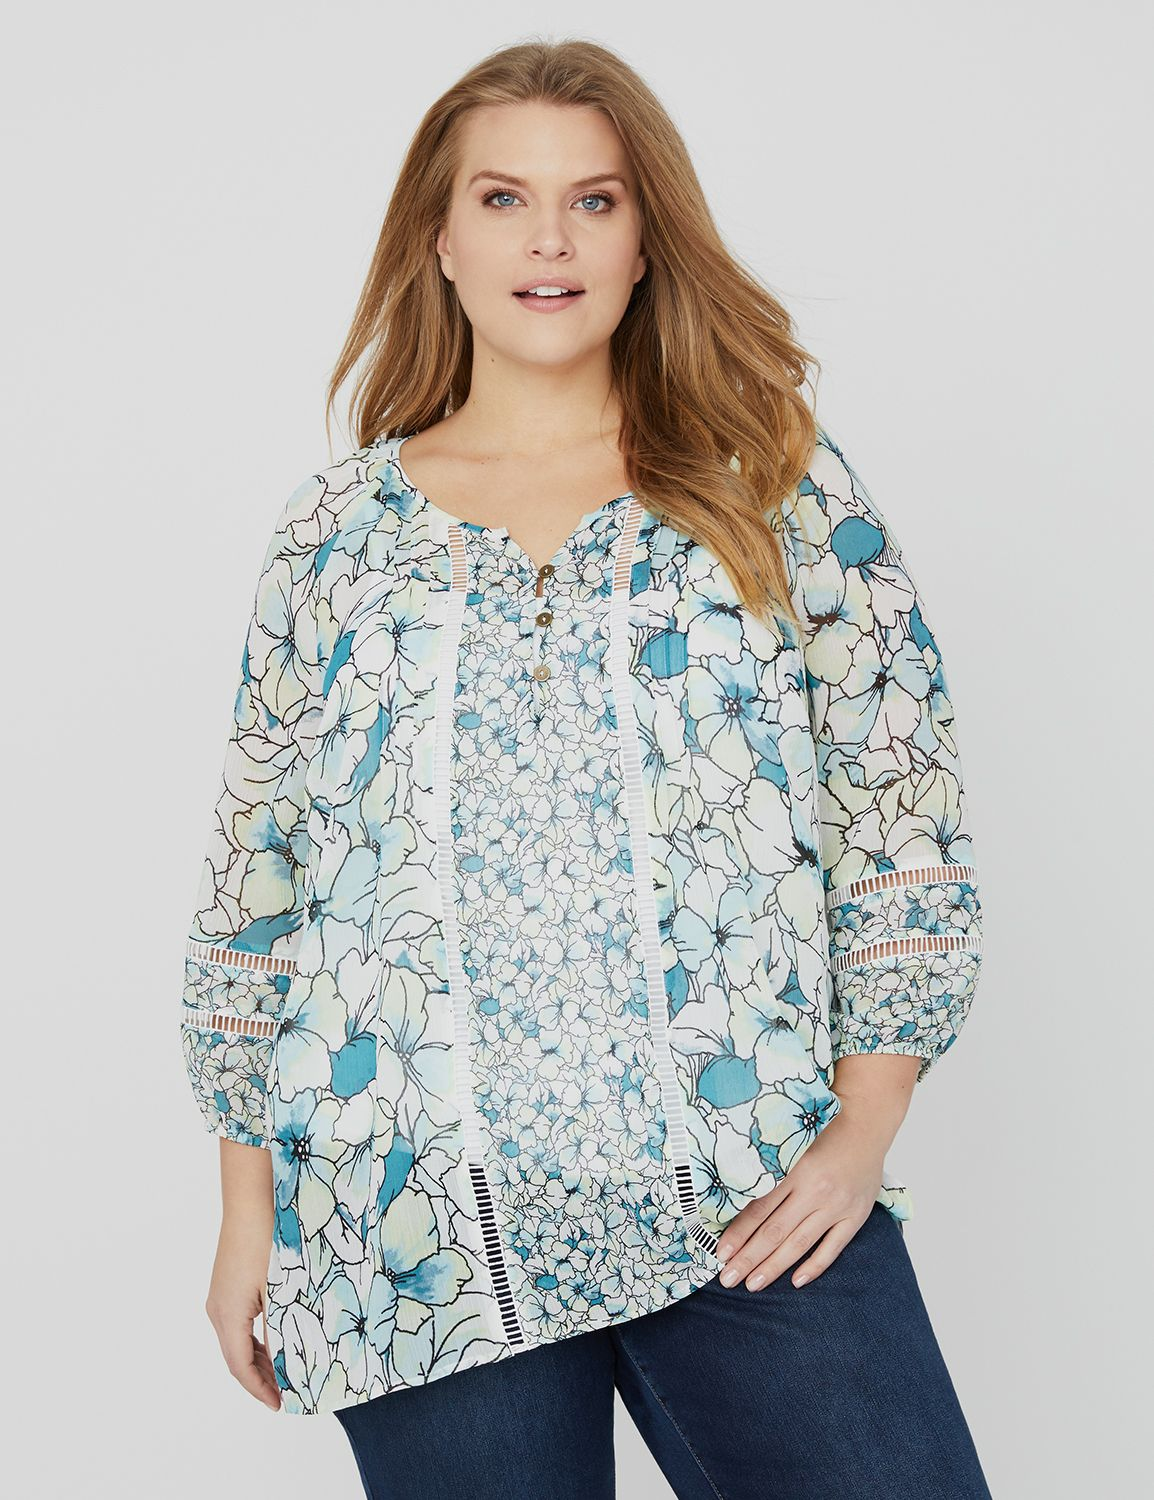 Floral Courtyard Blouse Floral Courtyard Blouse MP-300103620